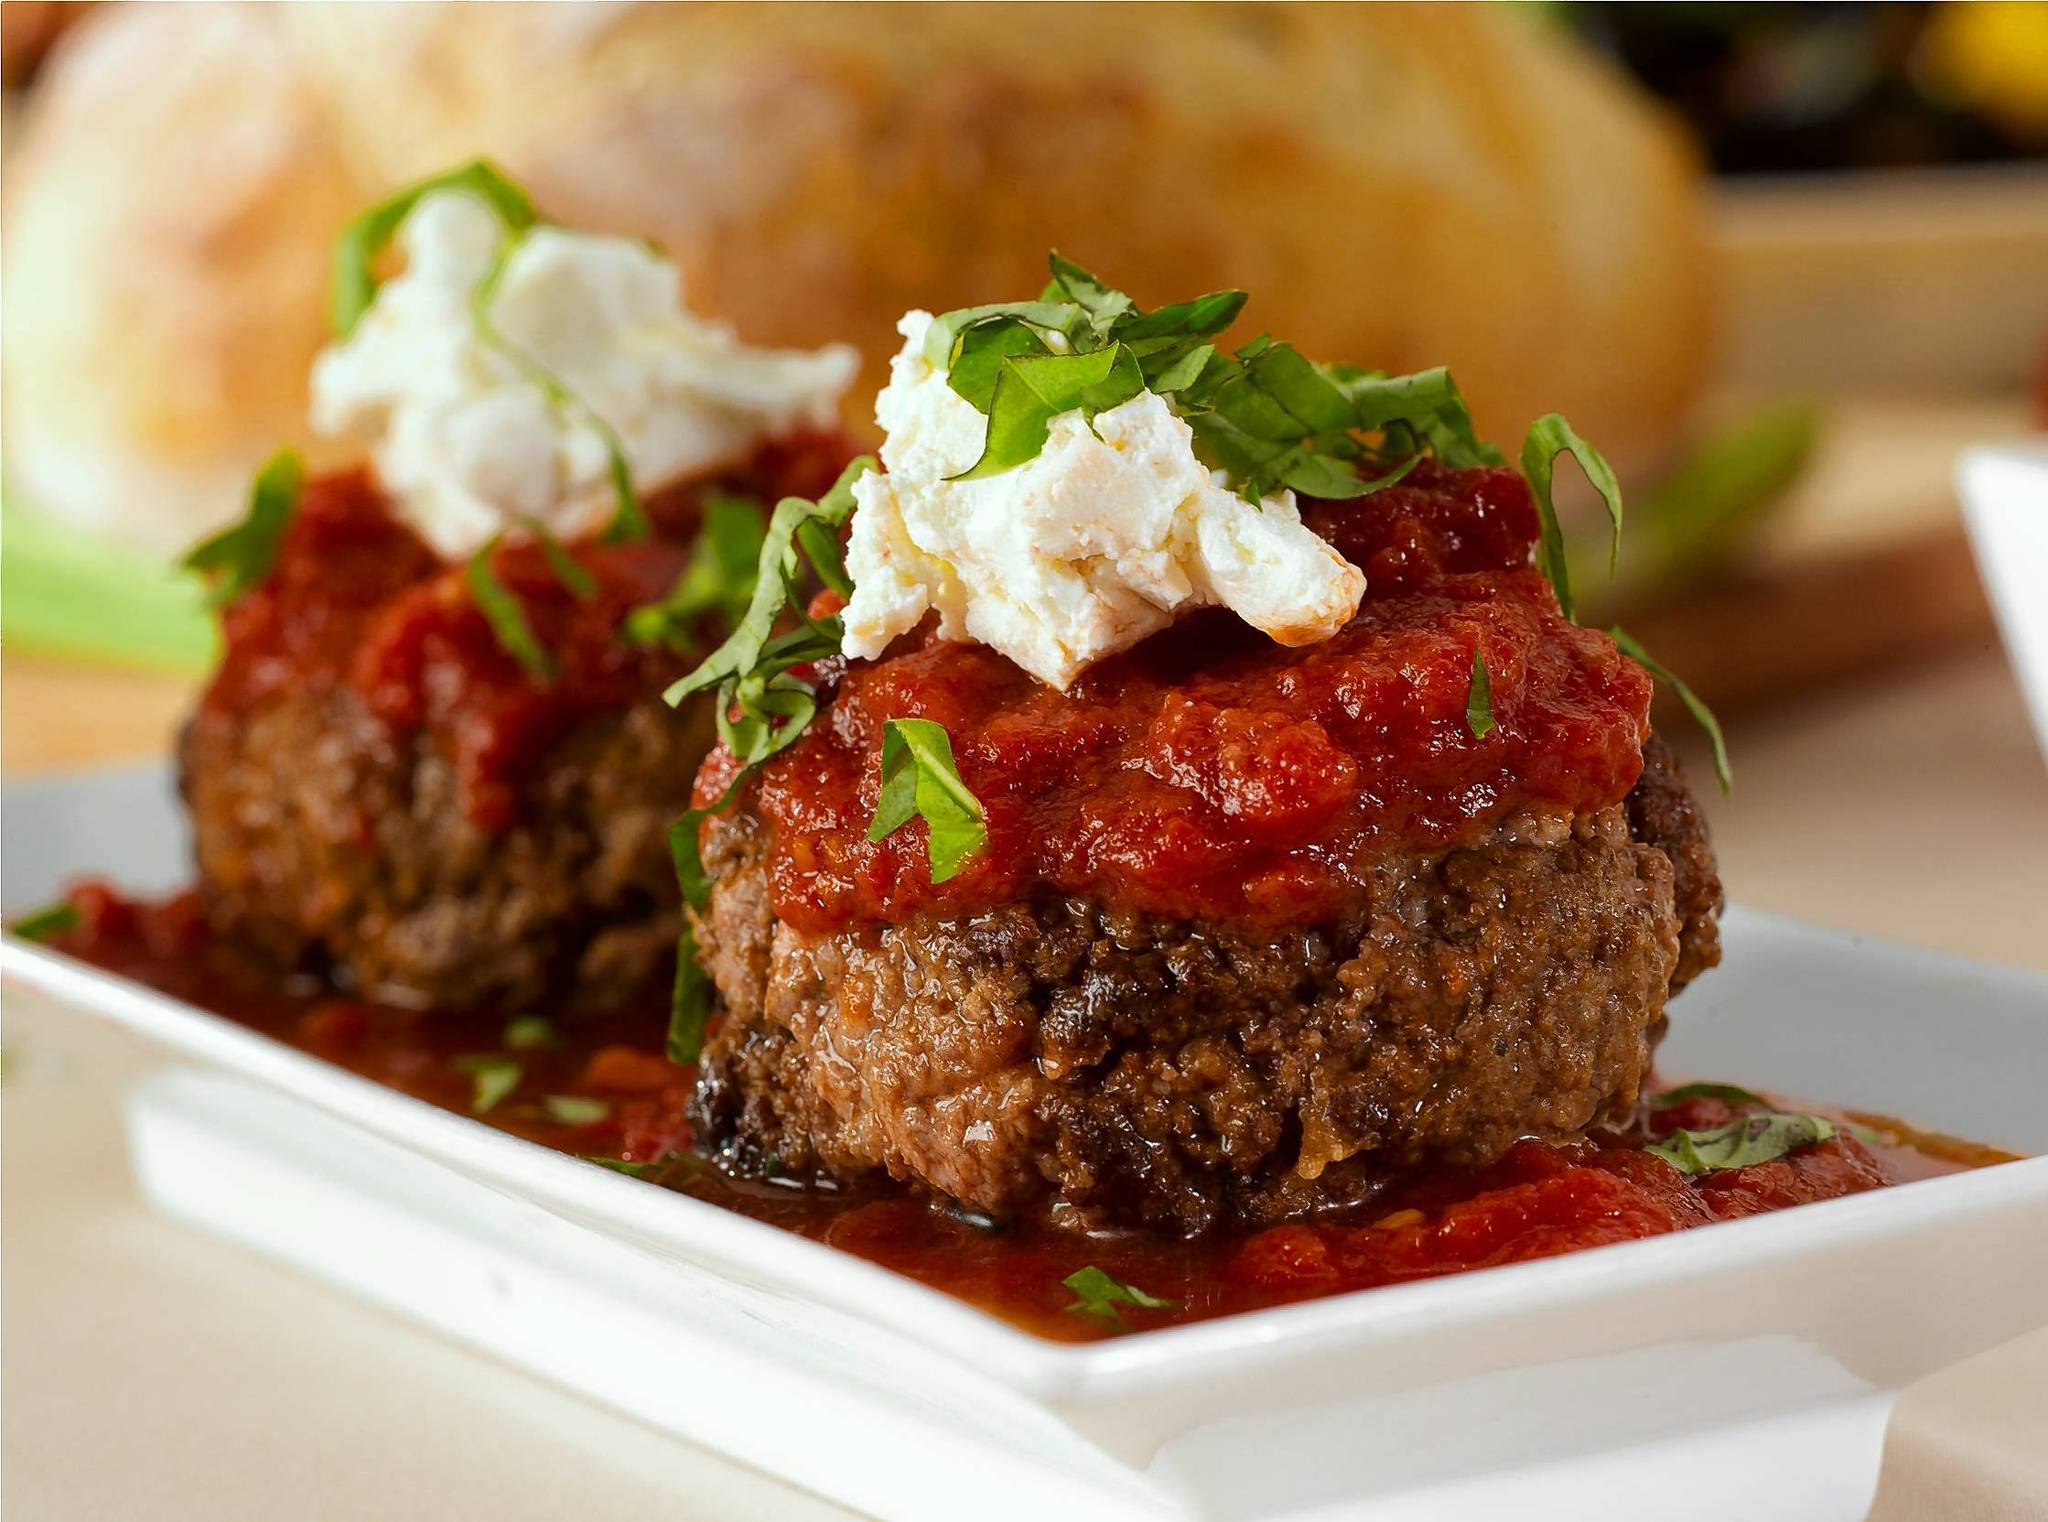 Don't visit Luca Bella without trying Mickey's meatballs, three tender meaty globes with bright-red tomato sauce and a dollop of creamy ricotta.